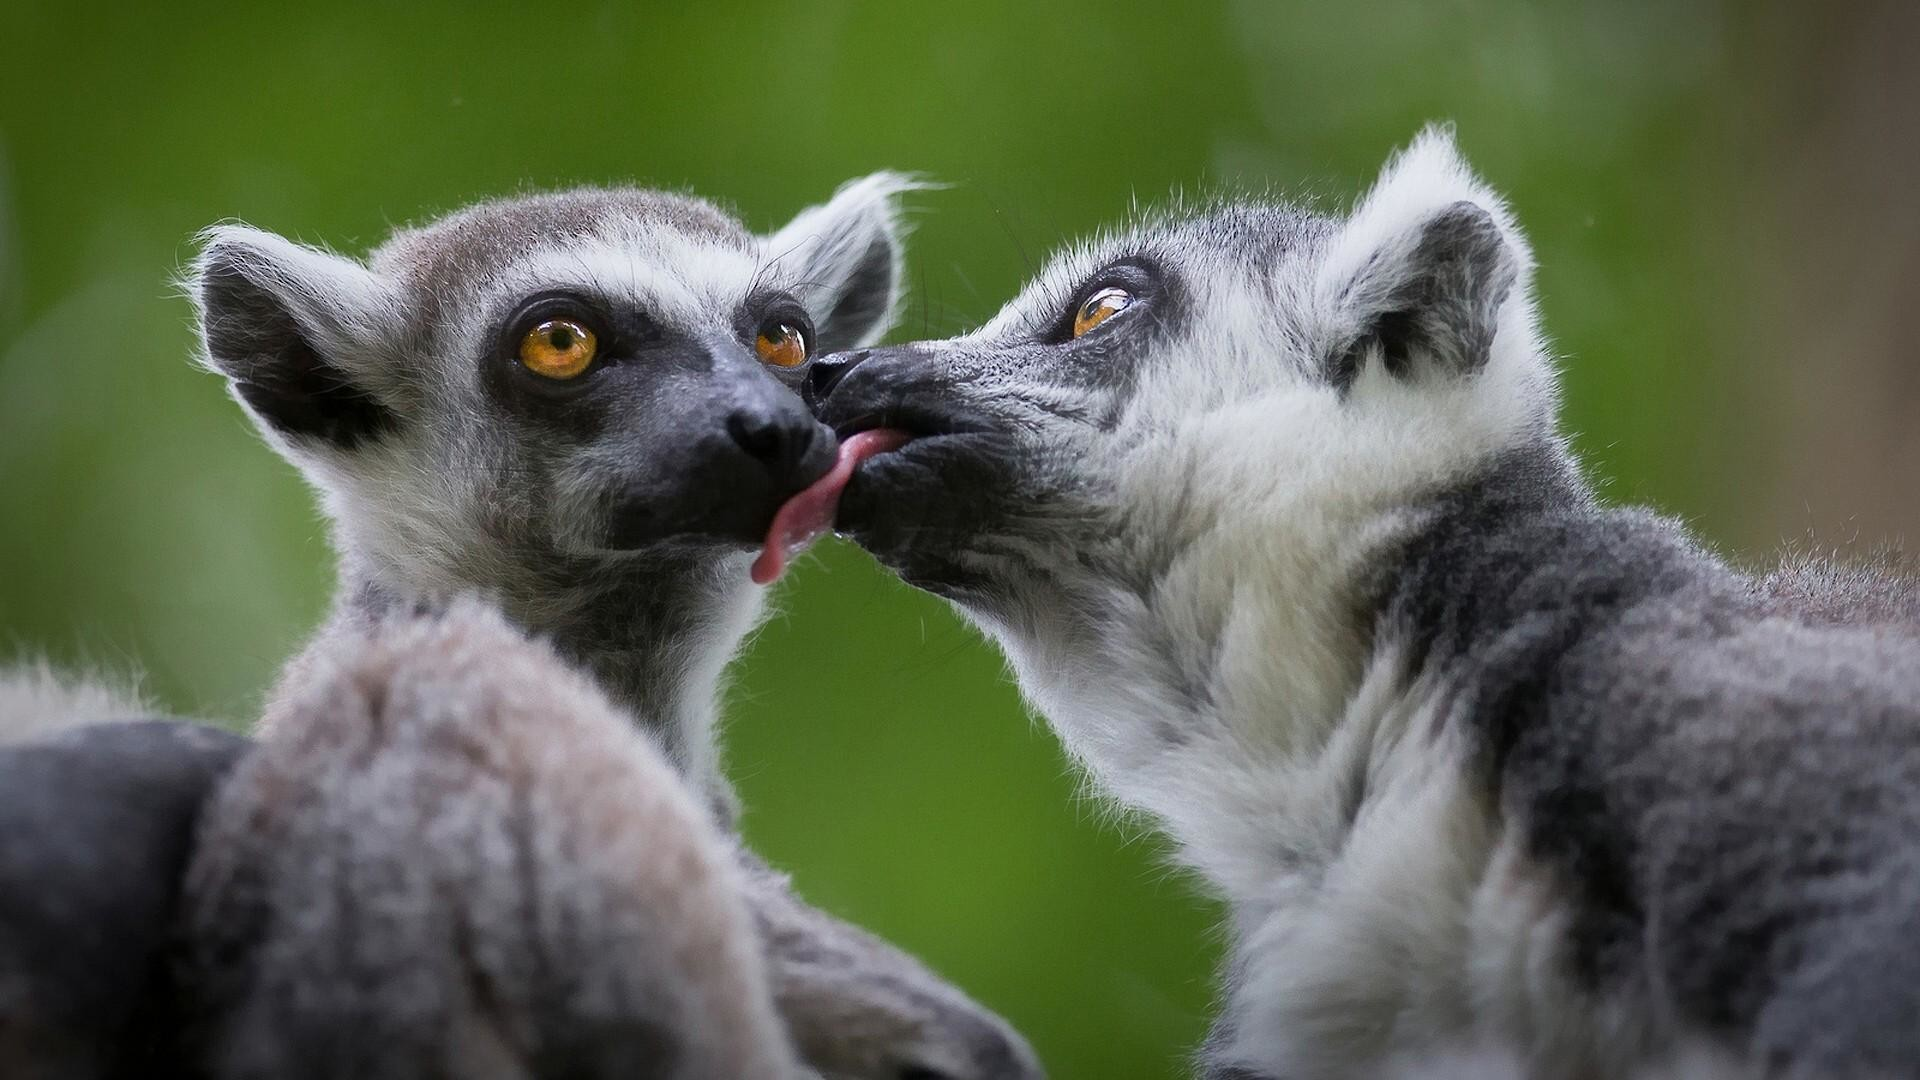 Res: 1920x1080, Cute Lemurs Kissing Wallpaper | Wallpaper Studio 10 | Tens of thousands HD  and UltraHD wallpapers for Android, Windows and Xbox